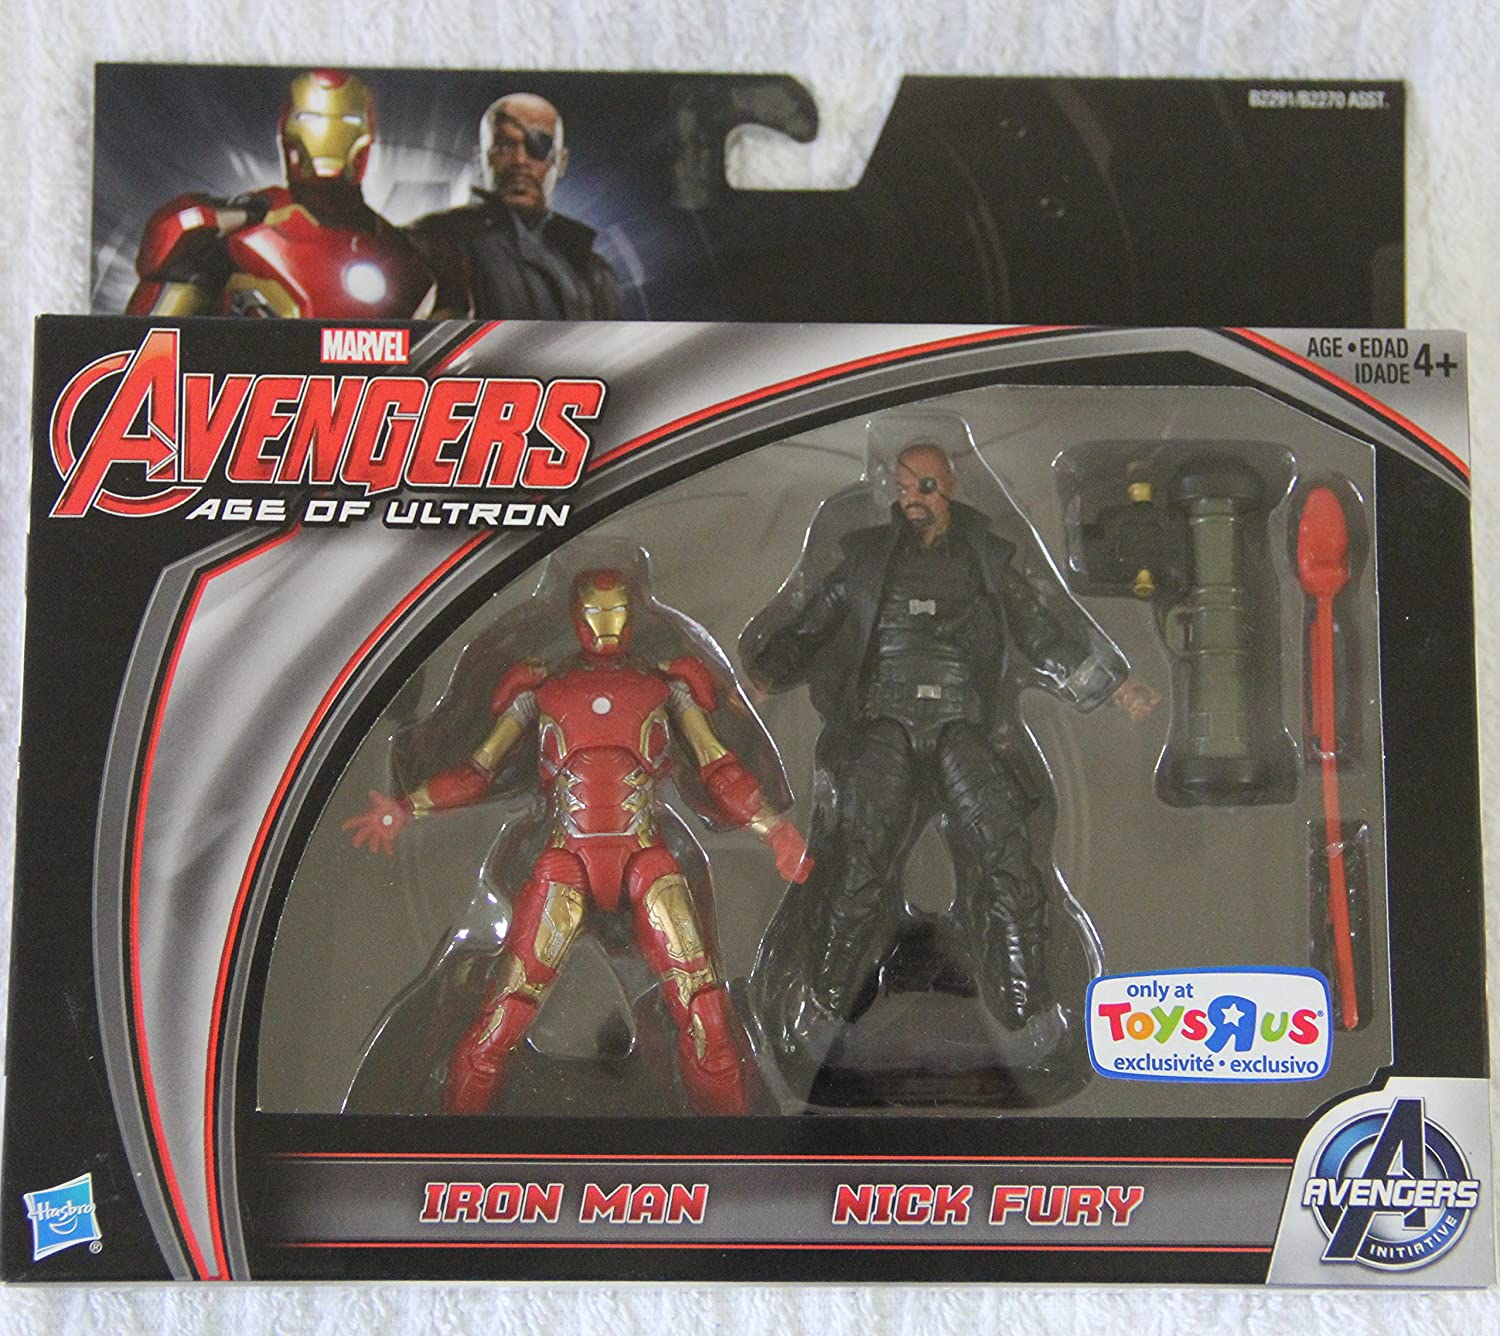 New Marvel Avengers Age of Ultron All Star Hulk 3.75-Inch Action Figure